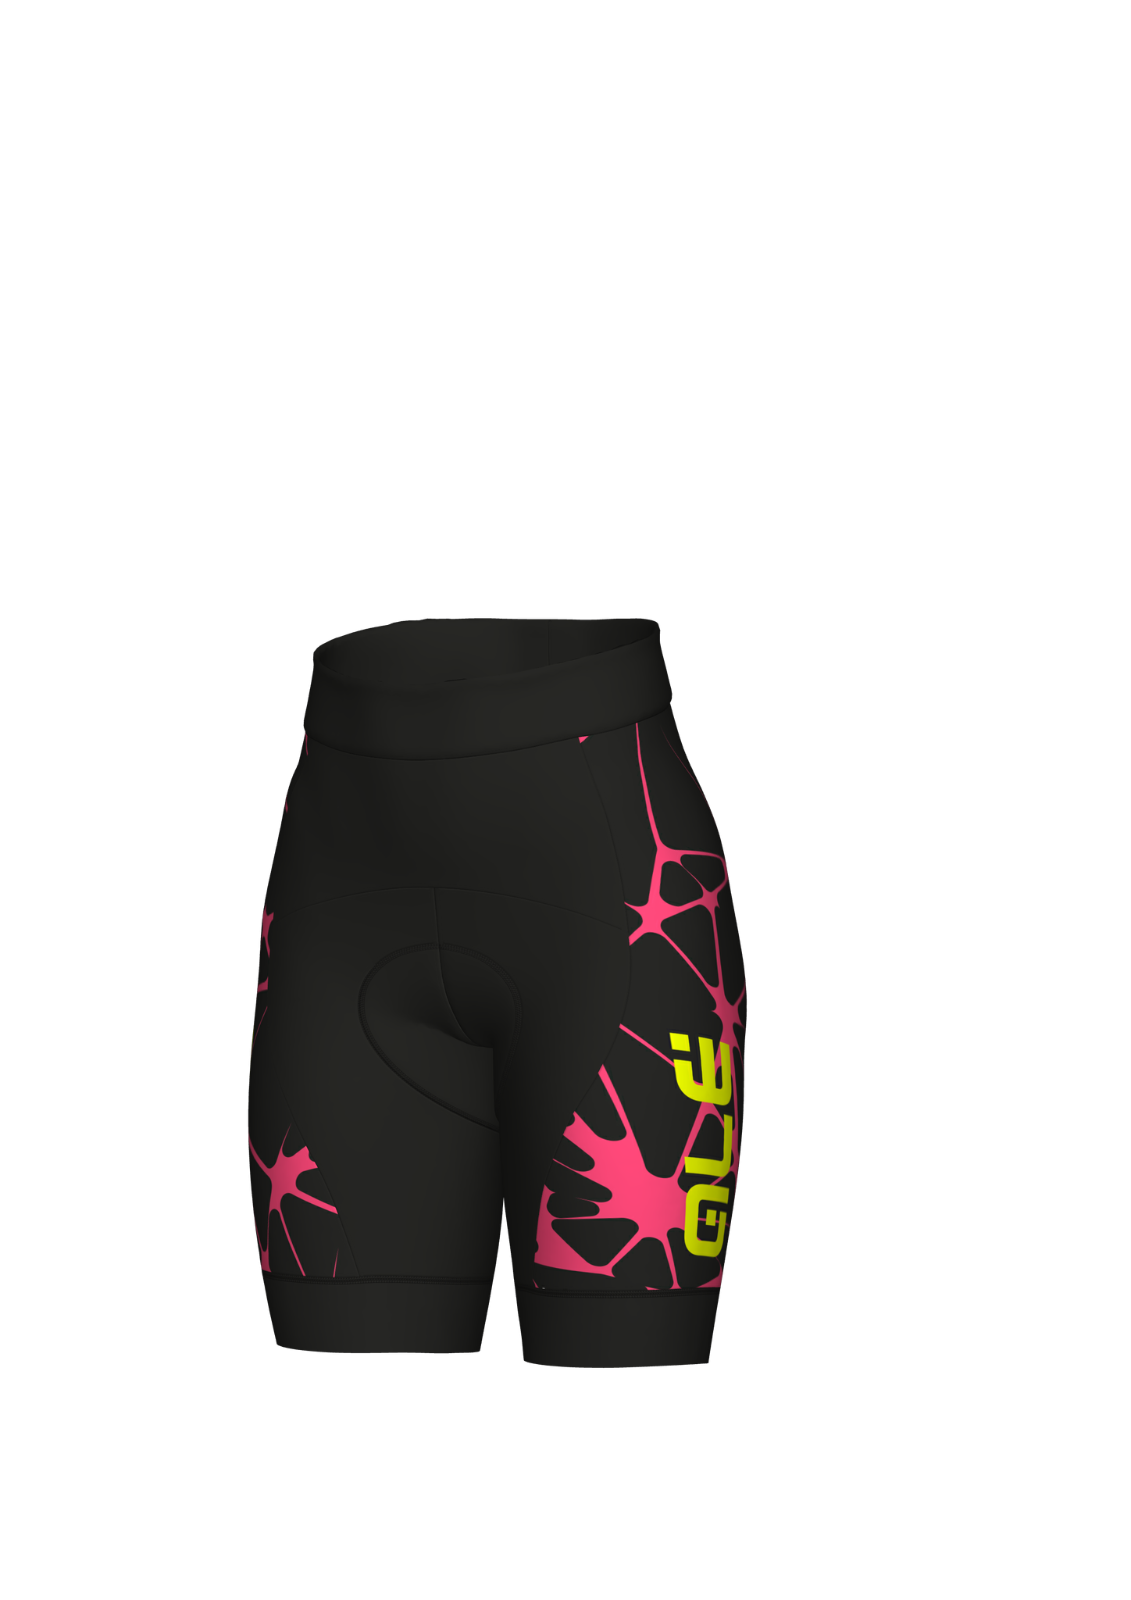 PANTALONCINO ALE' CRACLE W W CRACLE NERO ROSA FLUO Größe XL f23a43